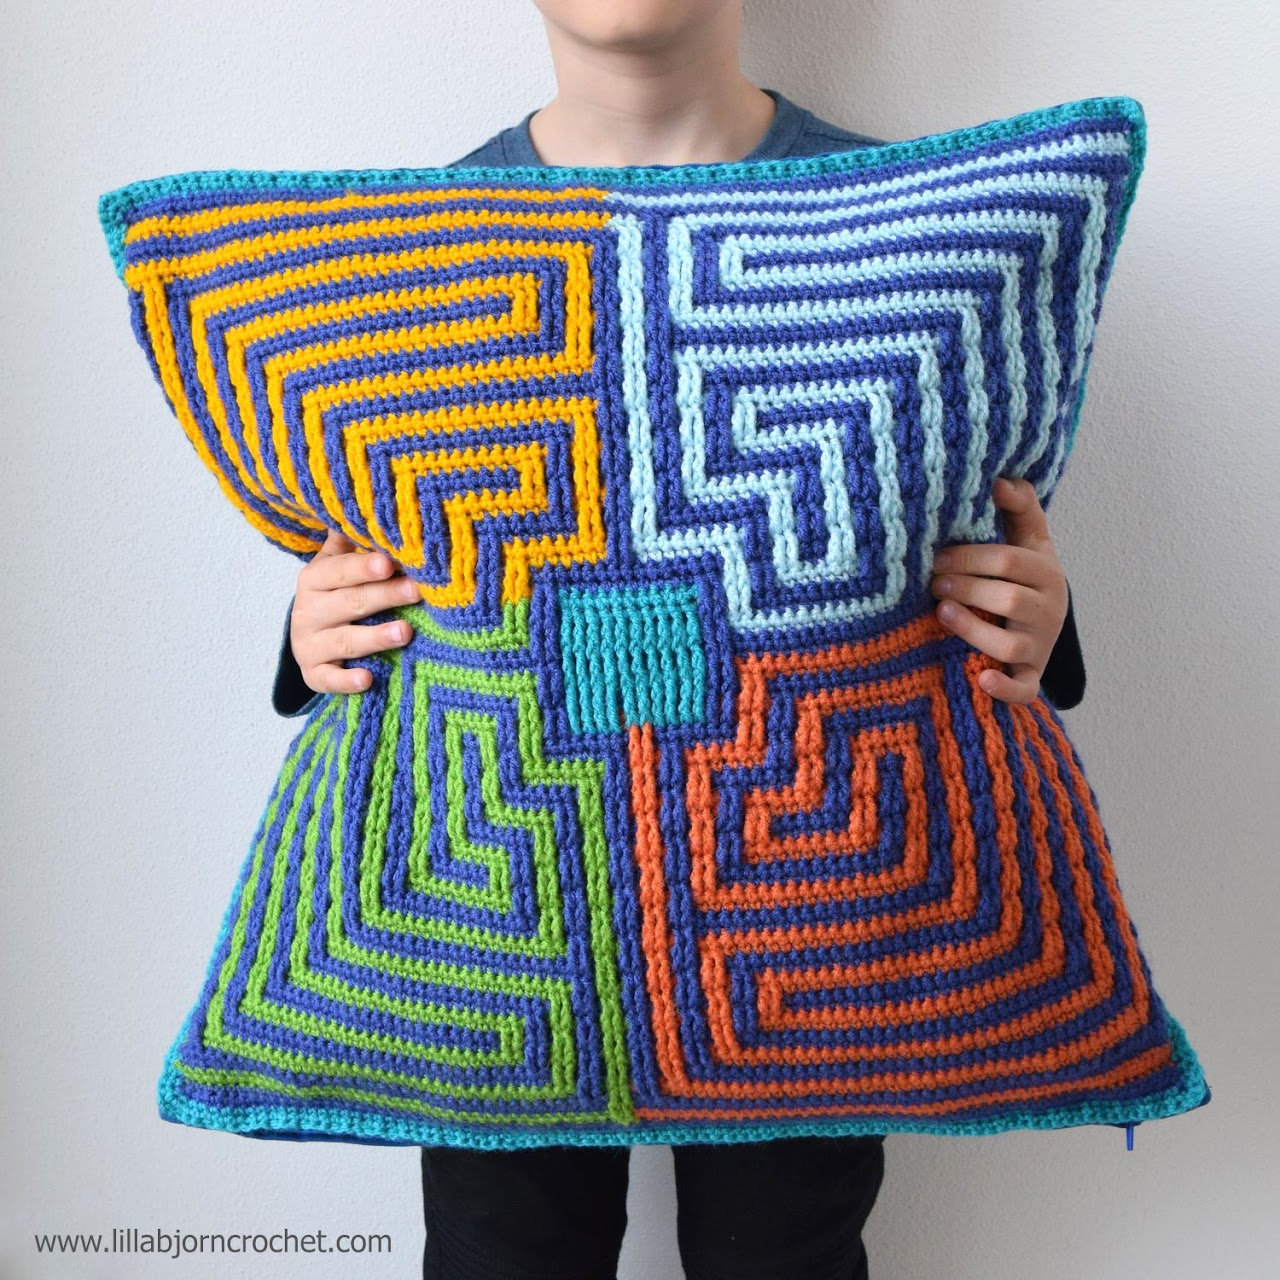 Roman Labyrinth pattern is written for both a rug and a pillow. Overlay crochet design by www.lillabjorncrochet.com